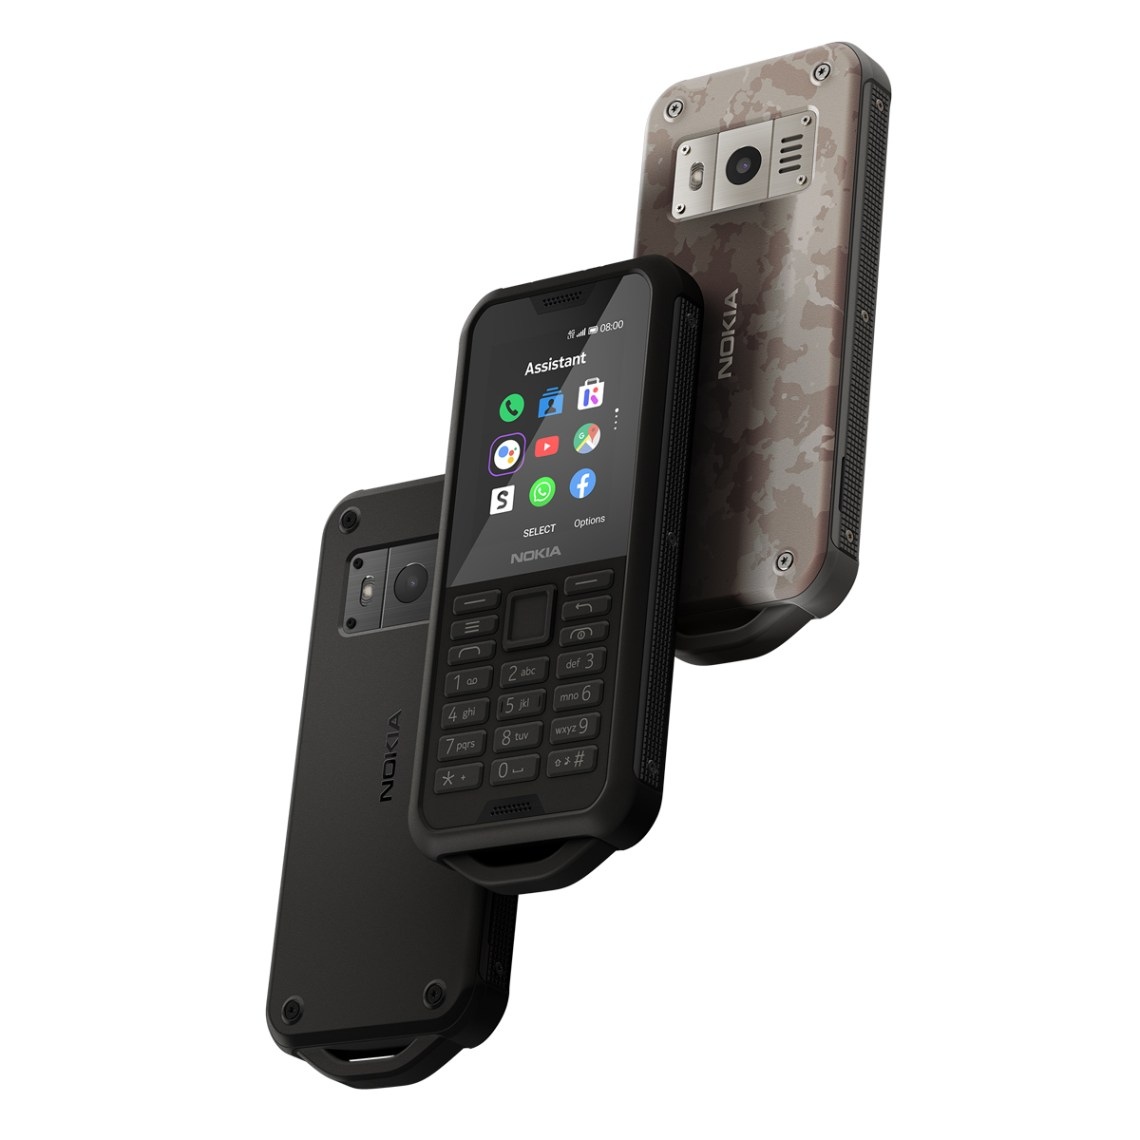 Nokia-800-Tough-group-2